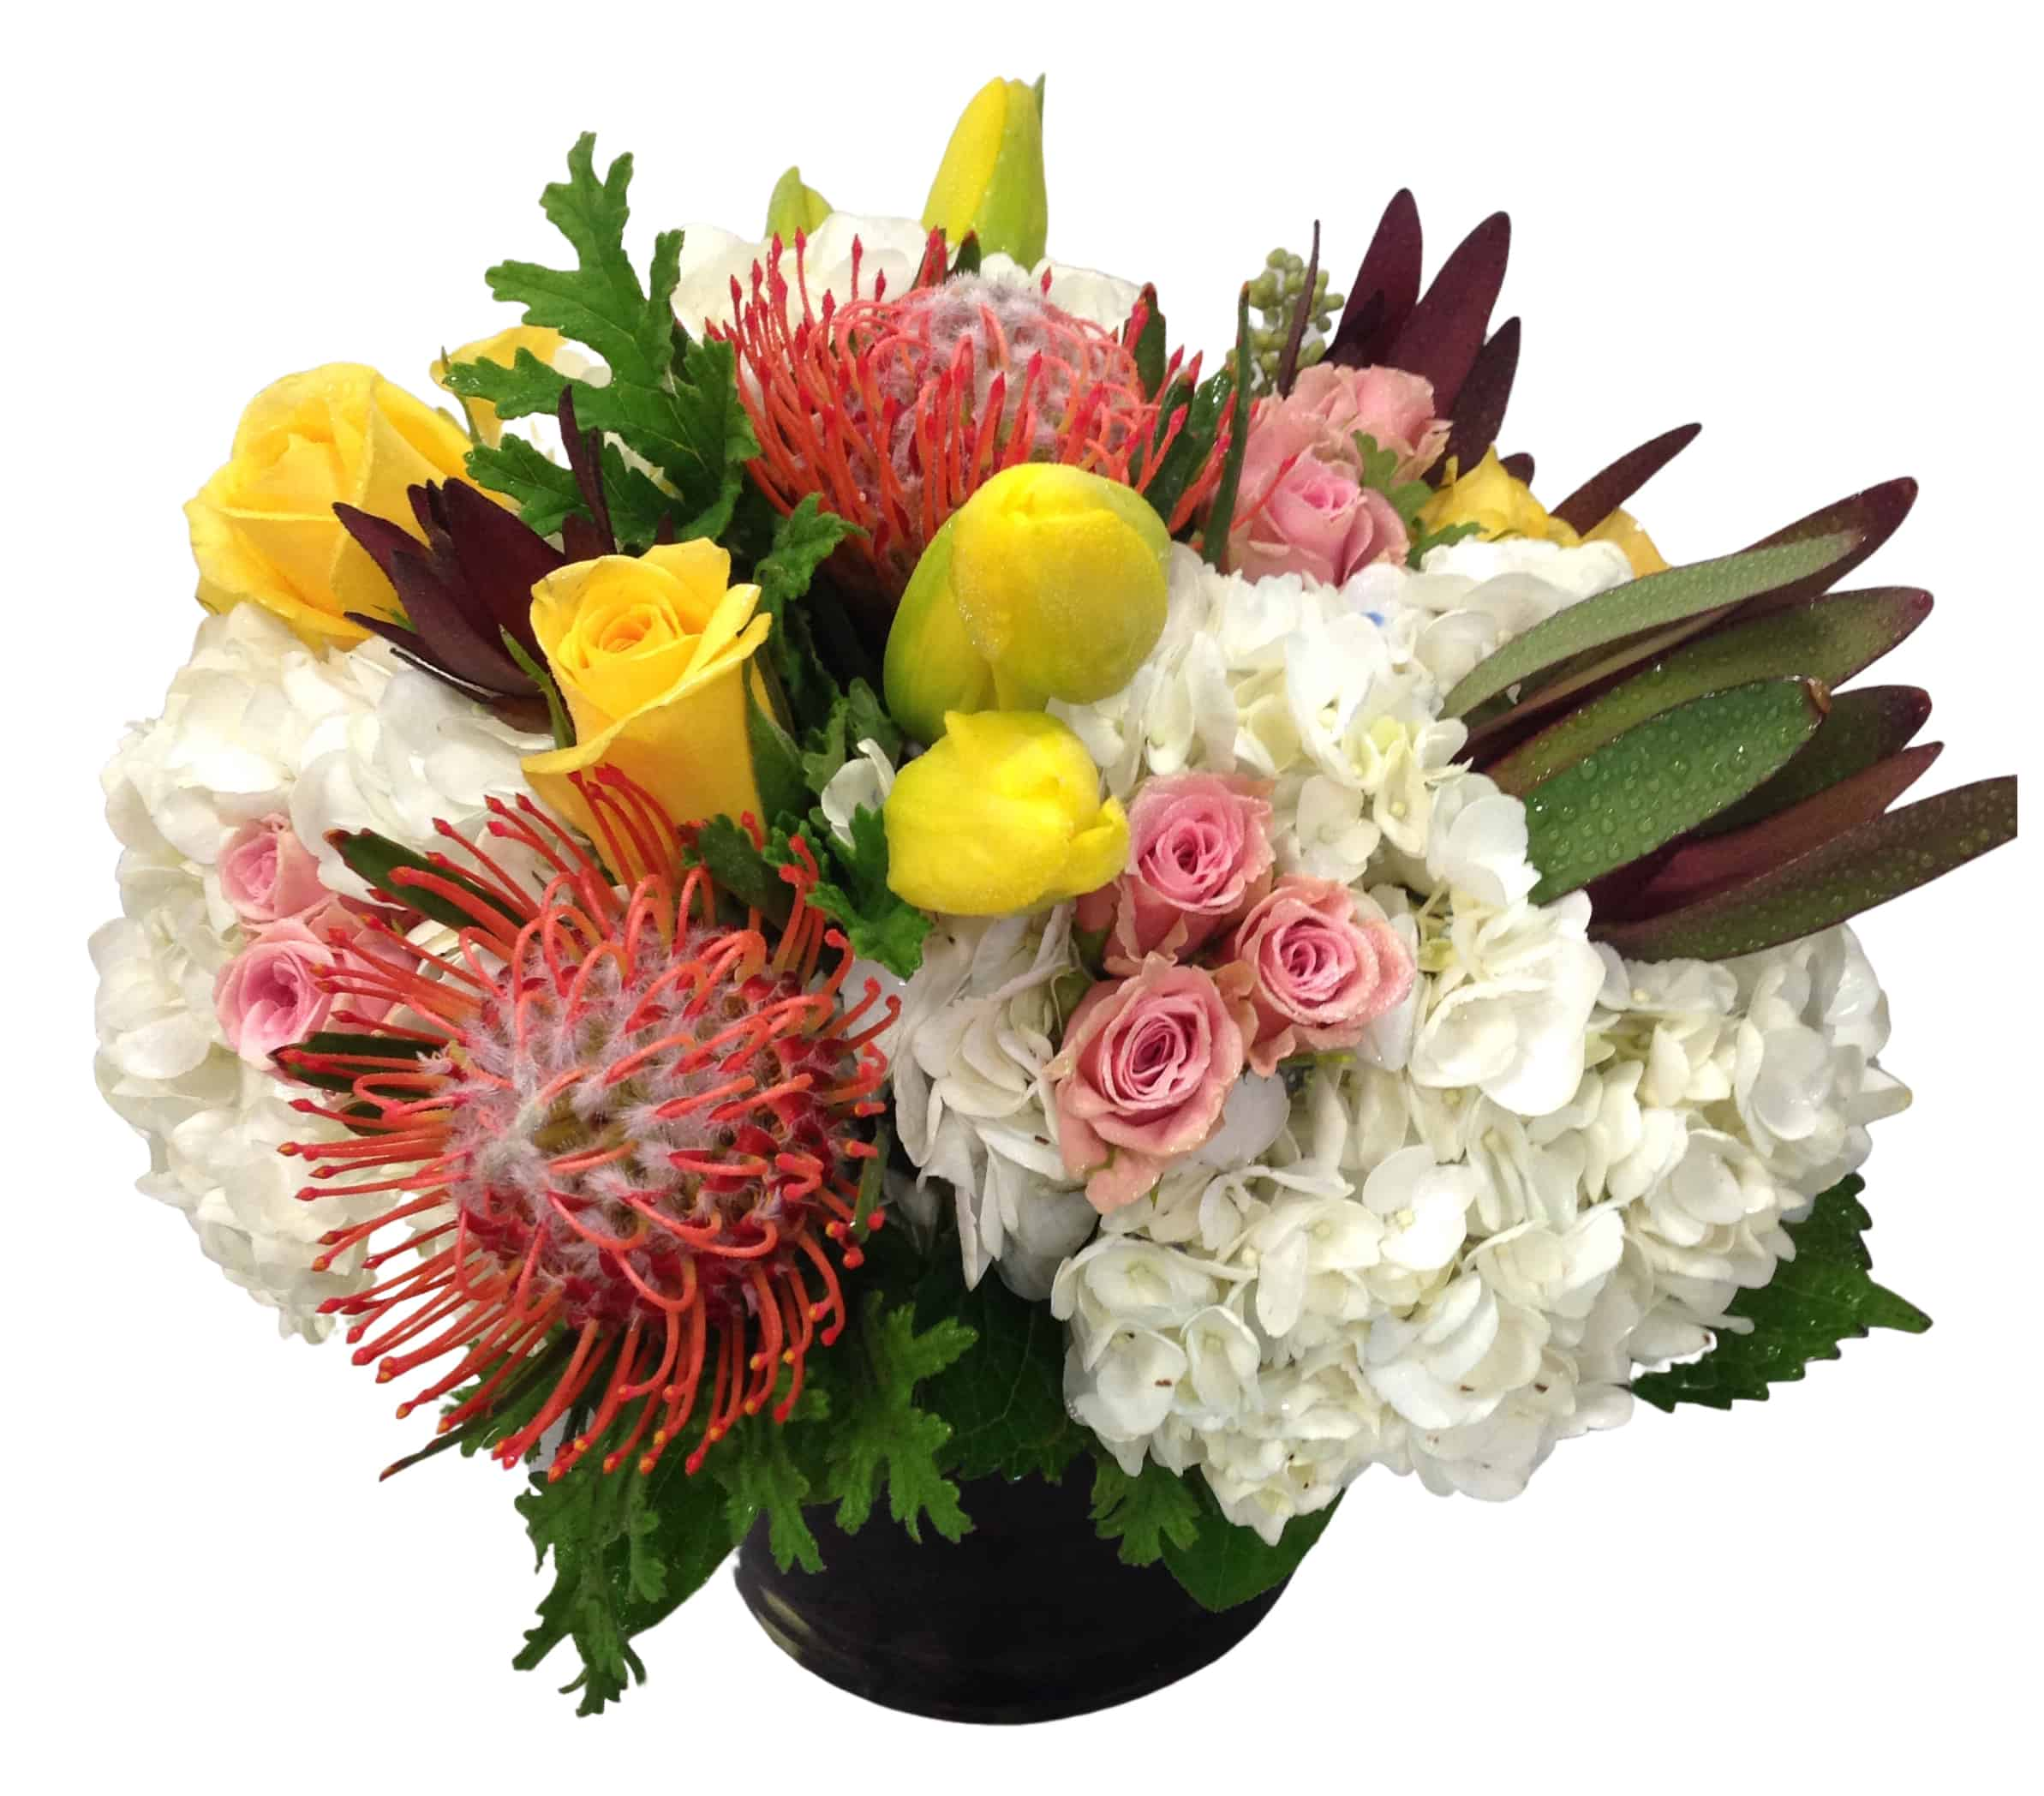 """Alto Unico"" Flower Arrangement"